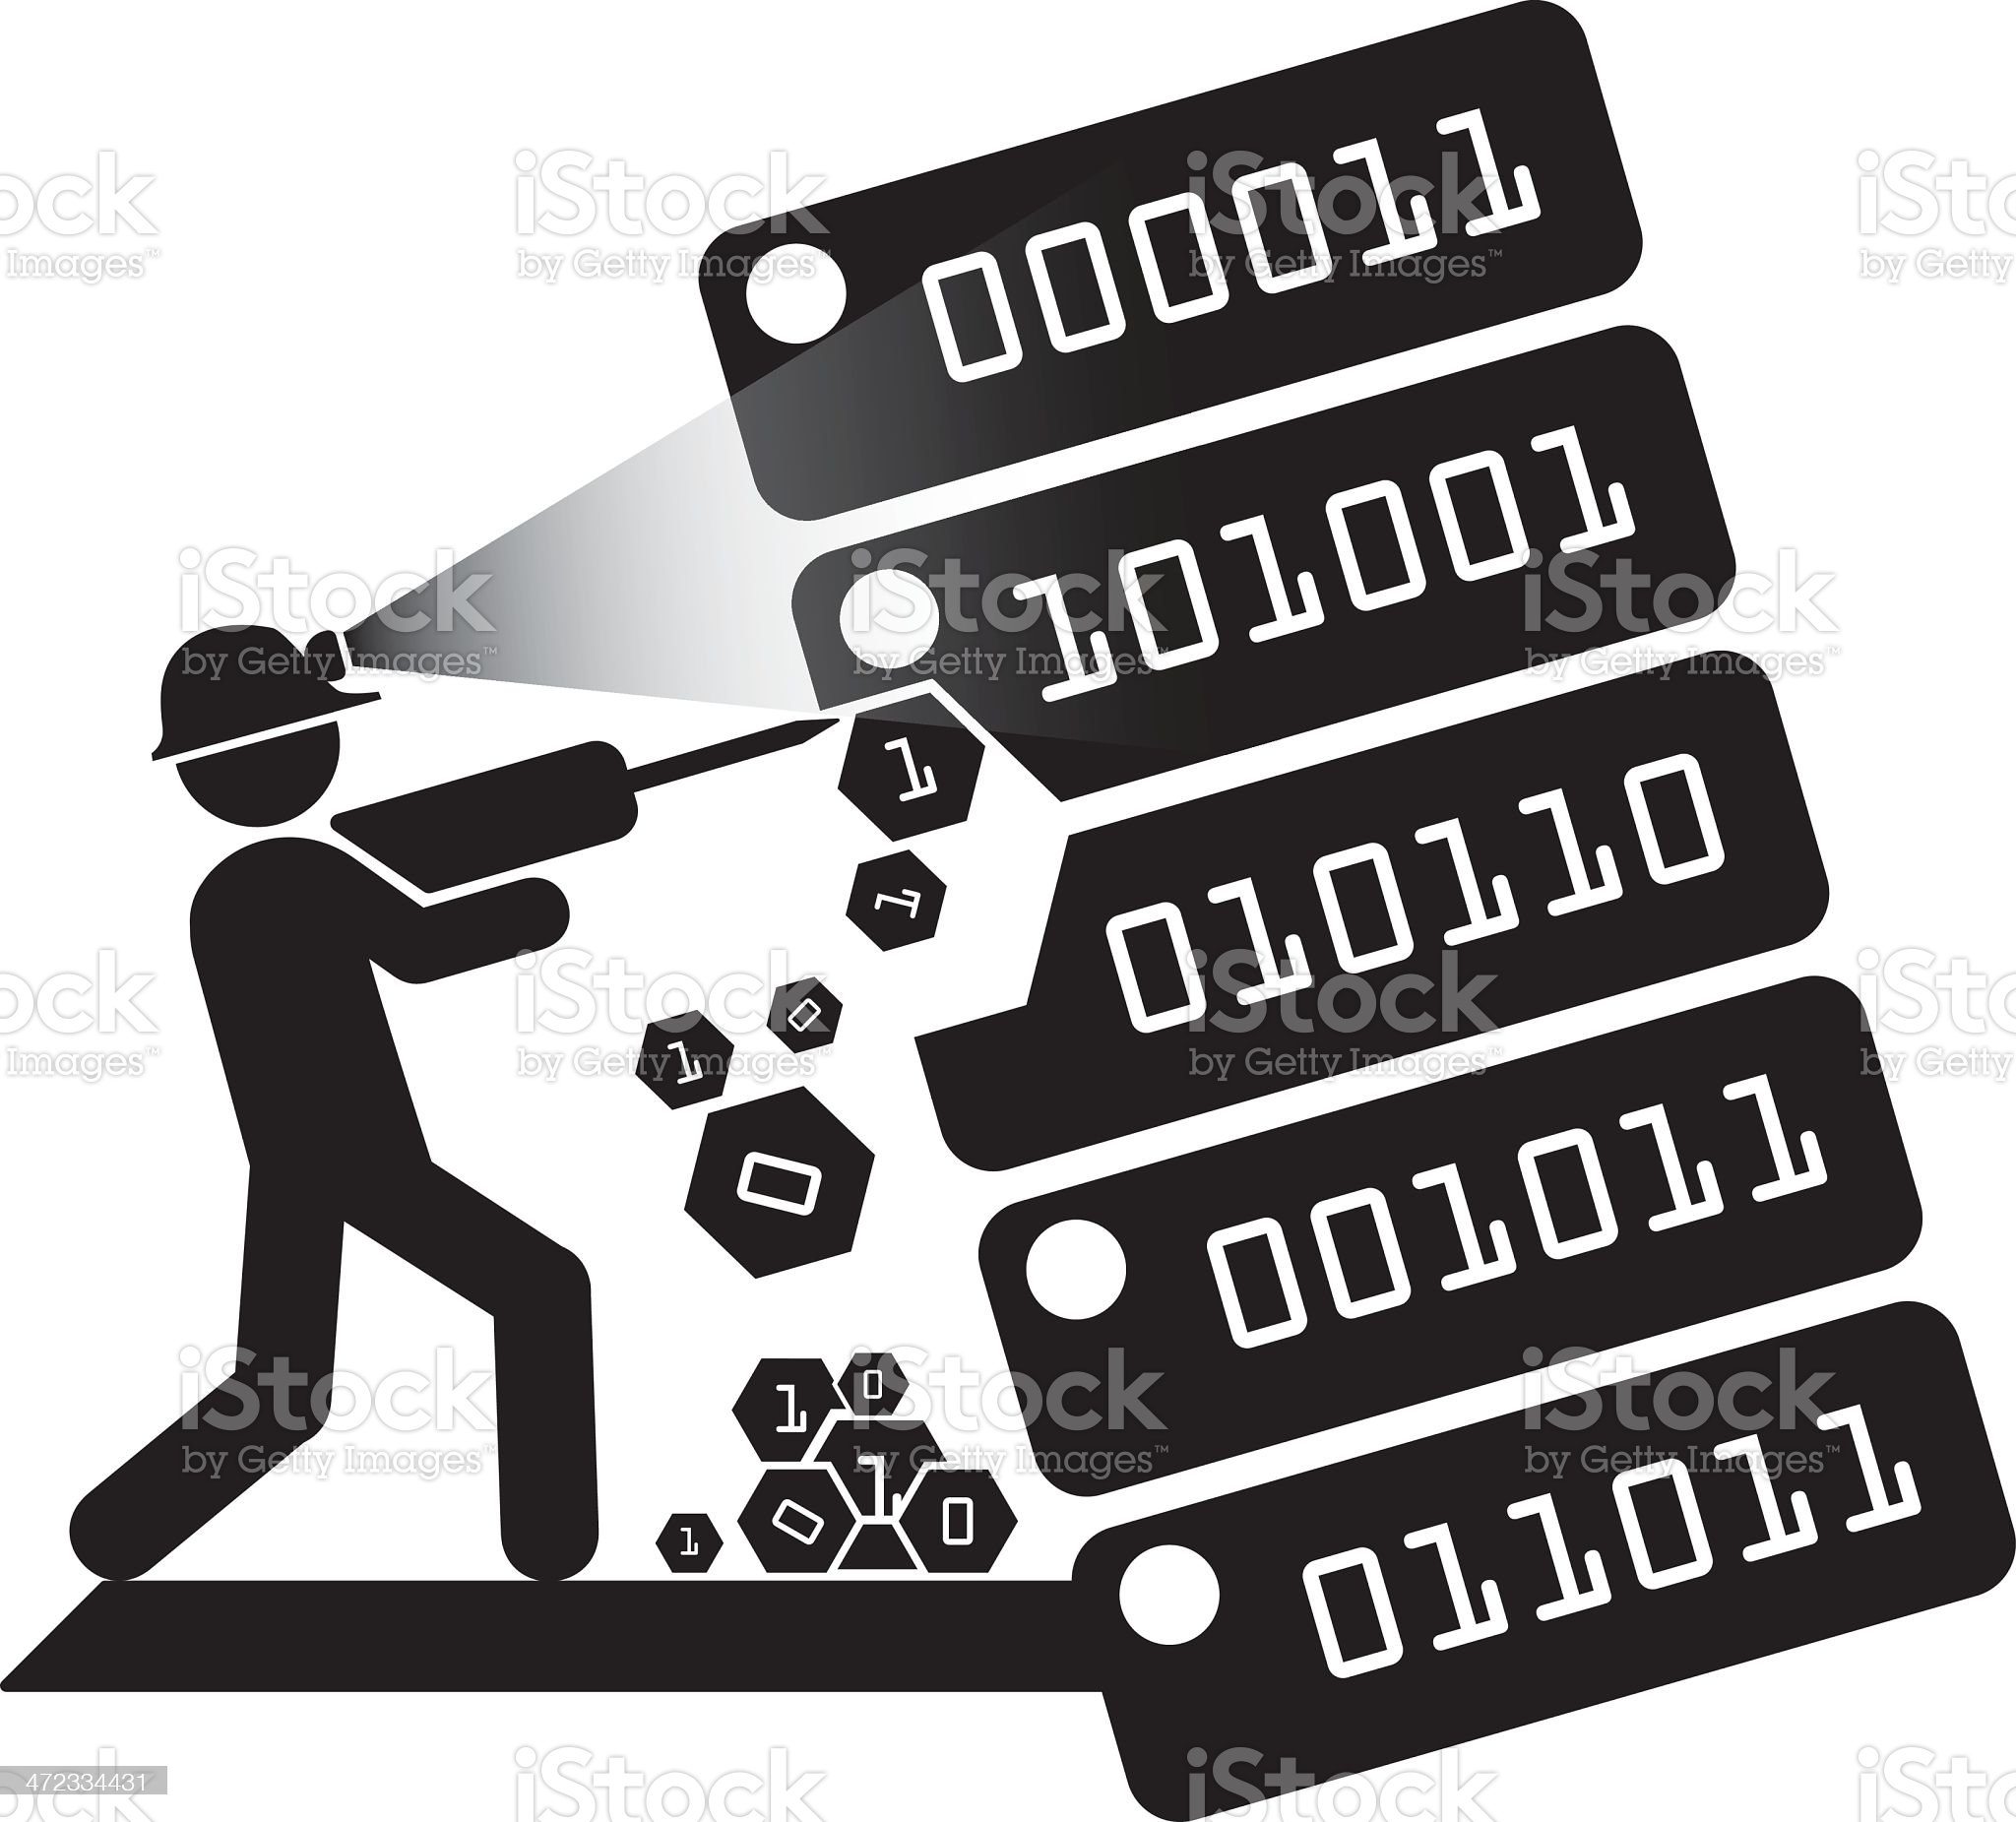 Data miner in a hard hat mining thru blocks of numbers royalty-free stock vector art